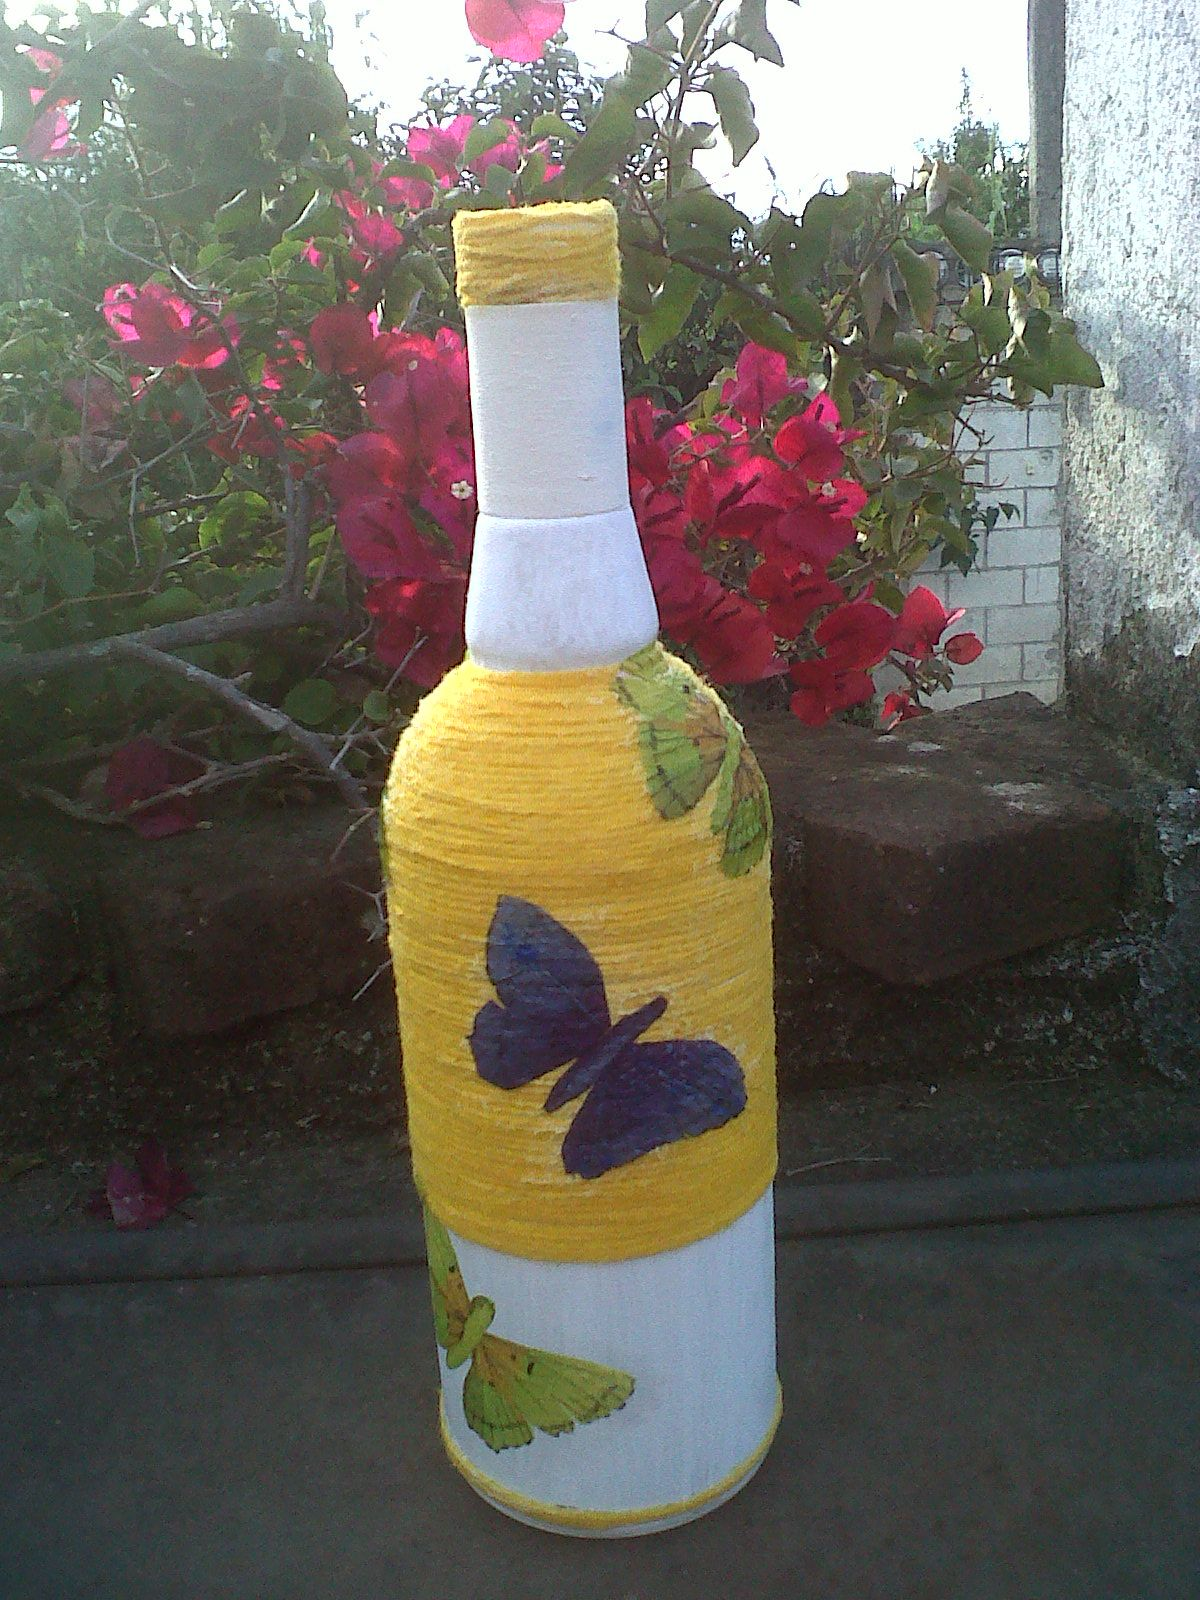 Botella Decorada Con Lana Y Decoupage Frascos Y Botellas De Vidrio Botellas Decoradas